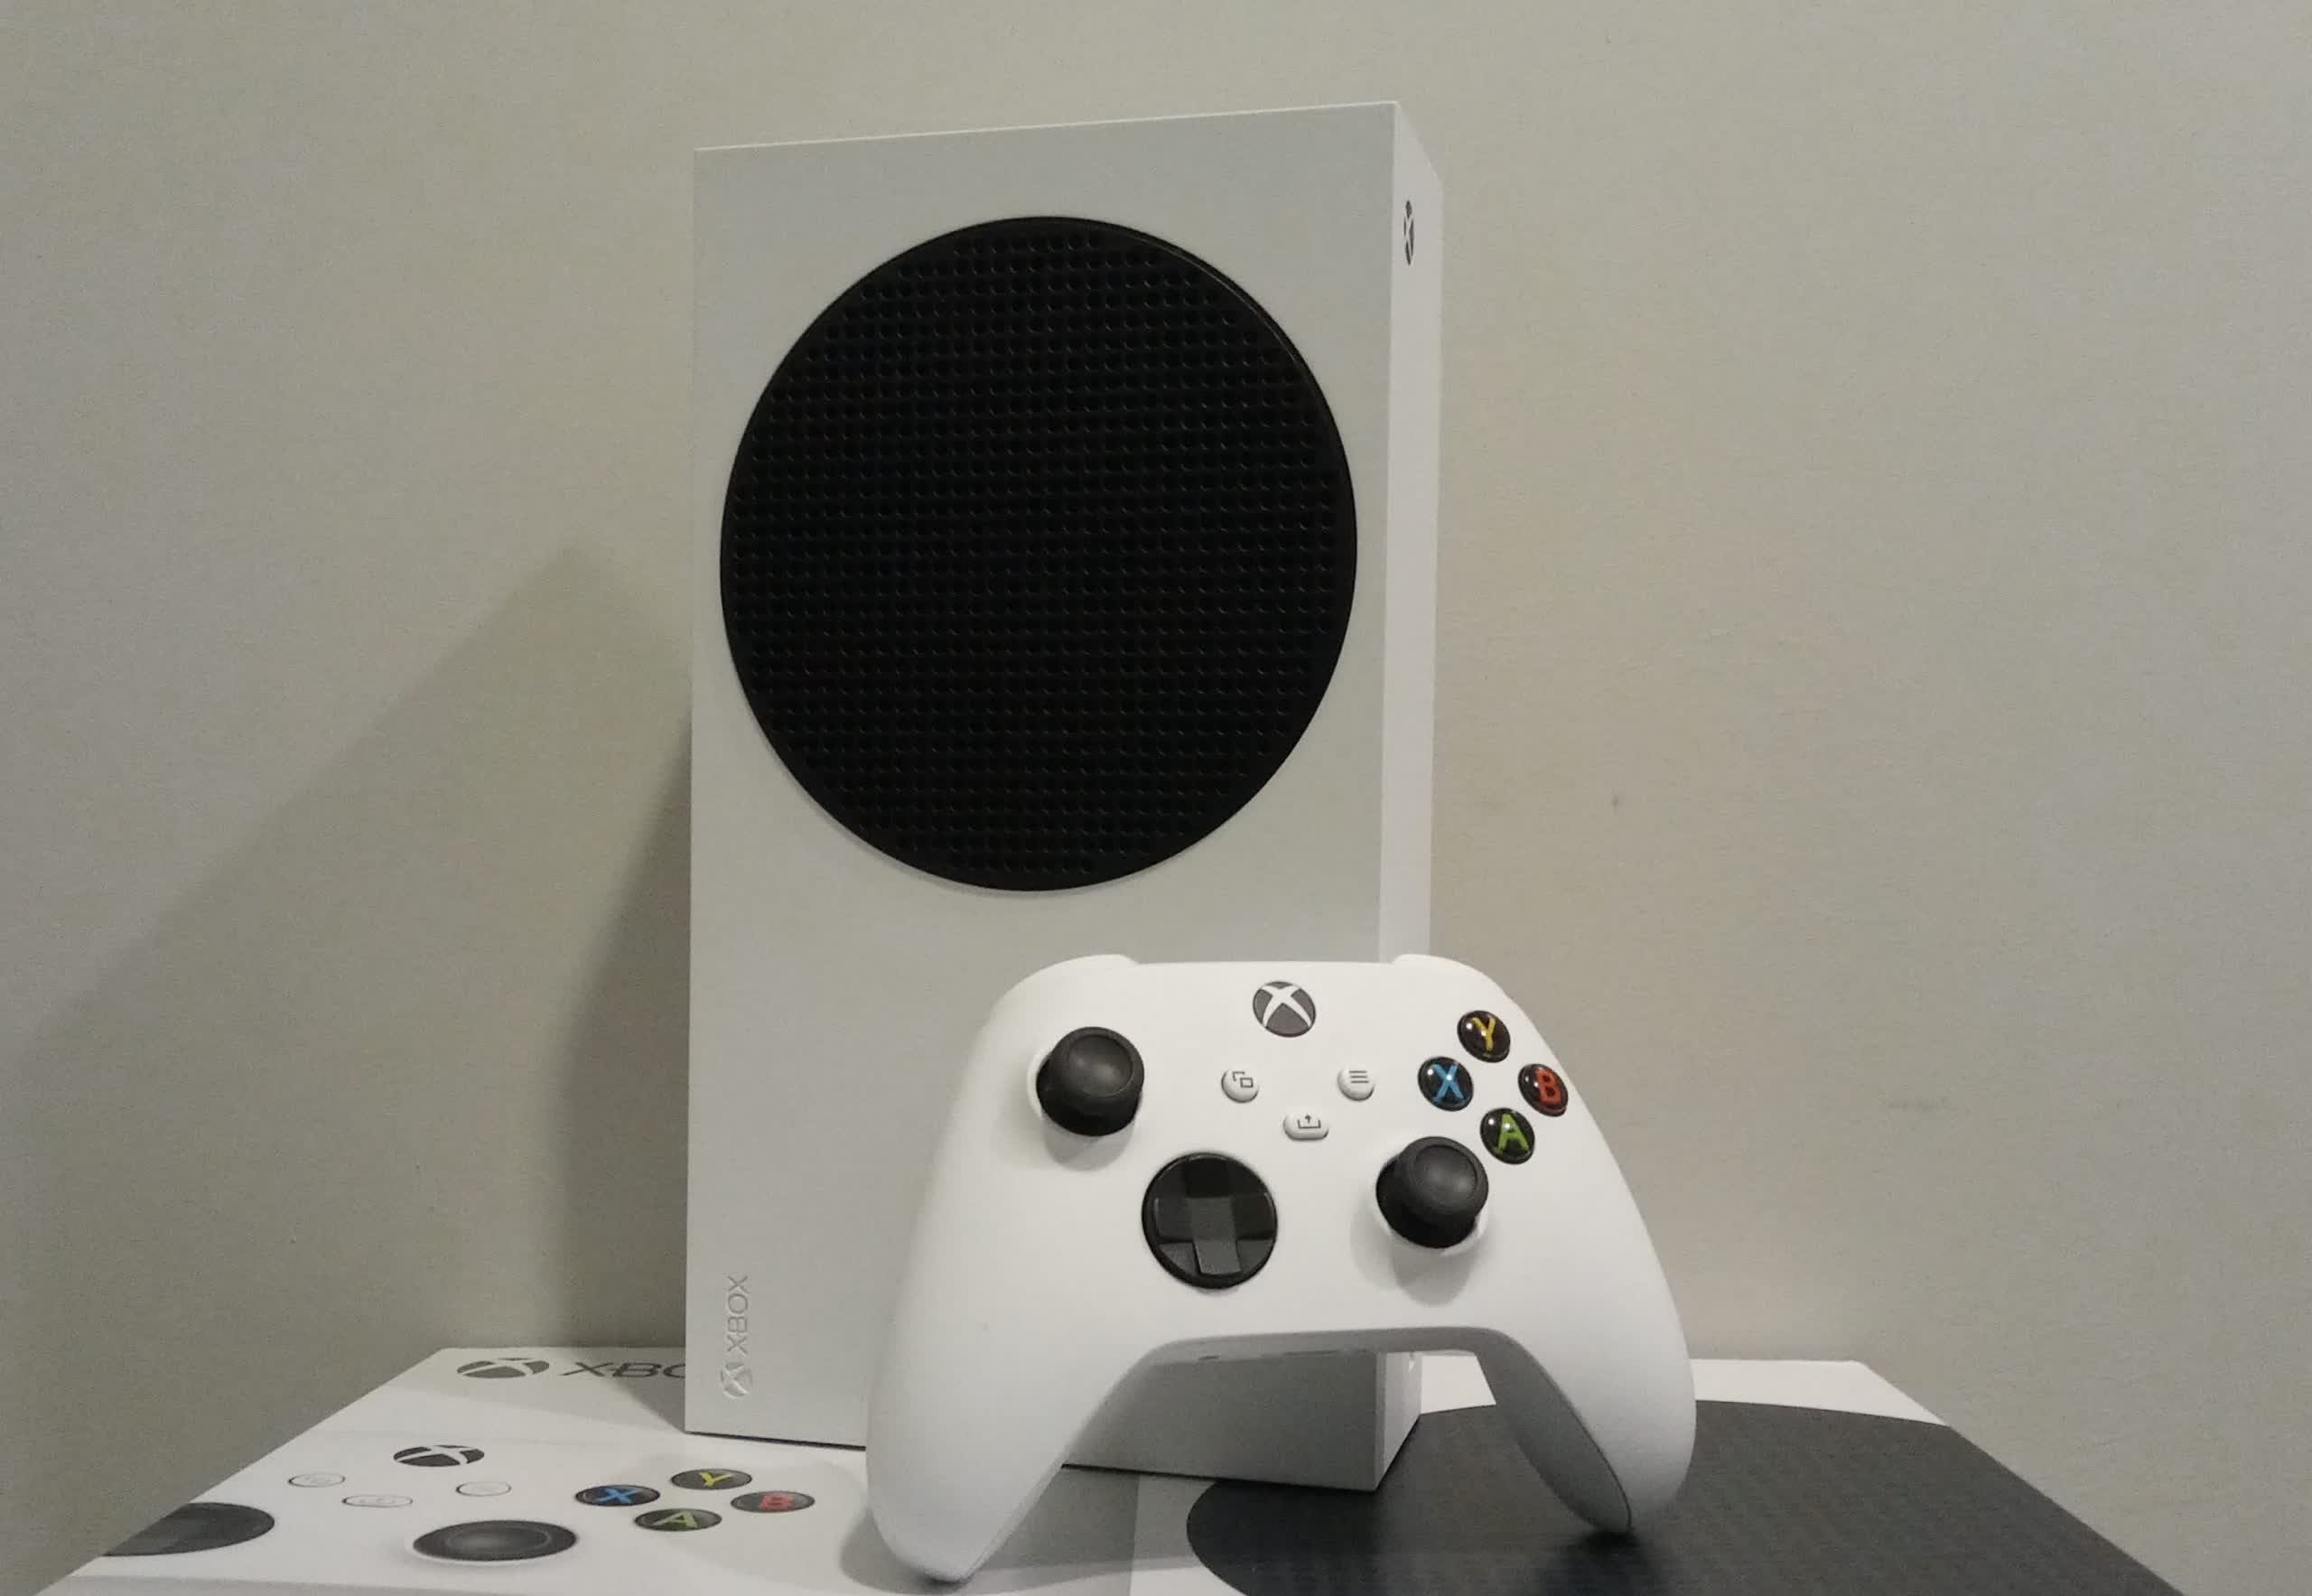 Android app support might come to Xbox consoles (update: it's not)